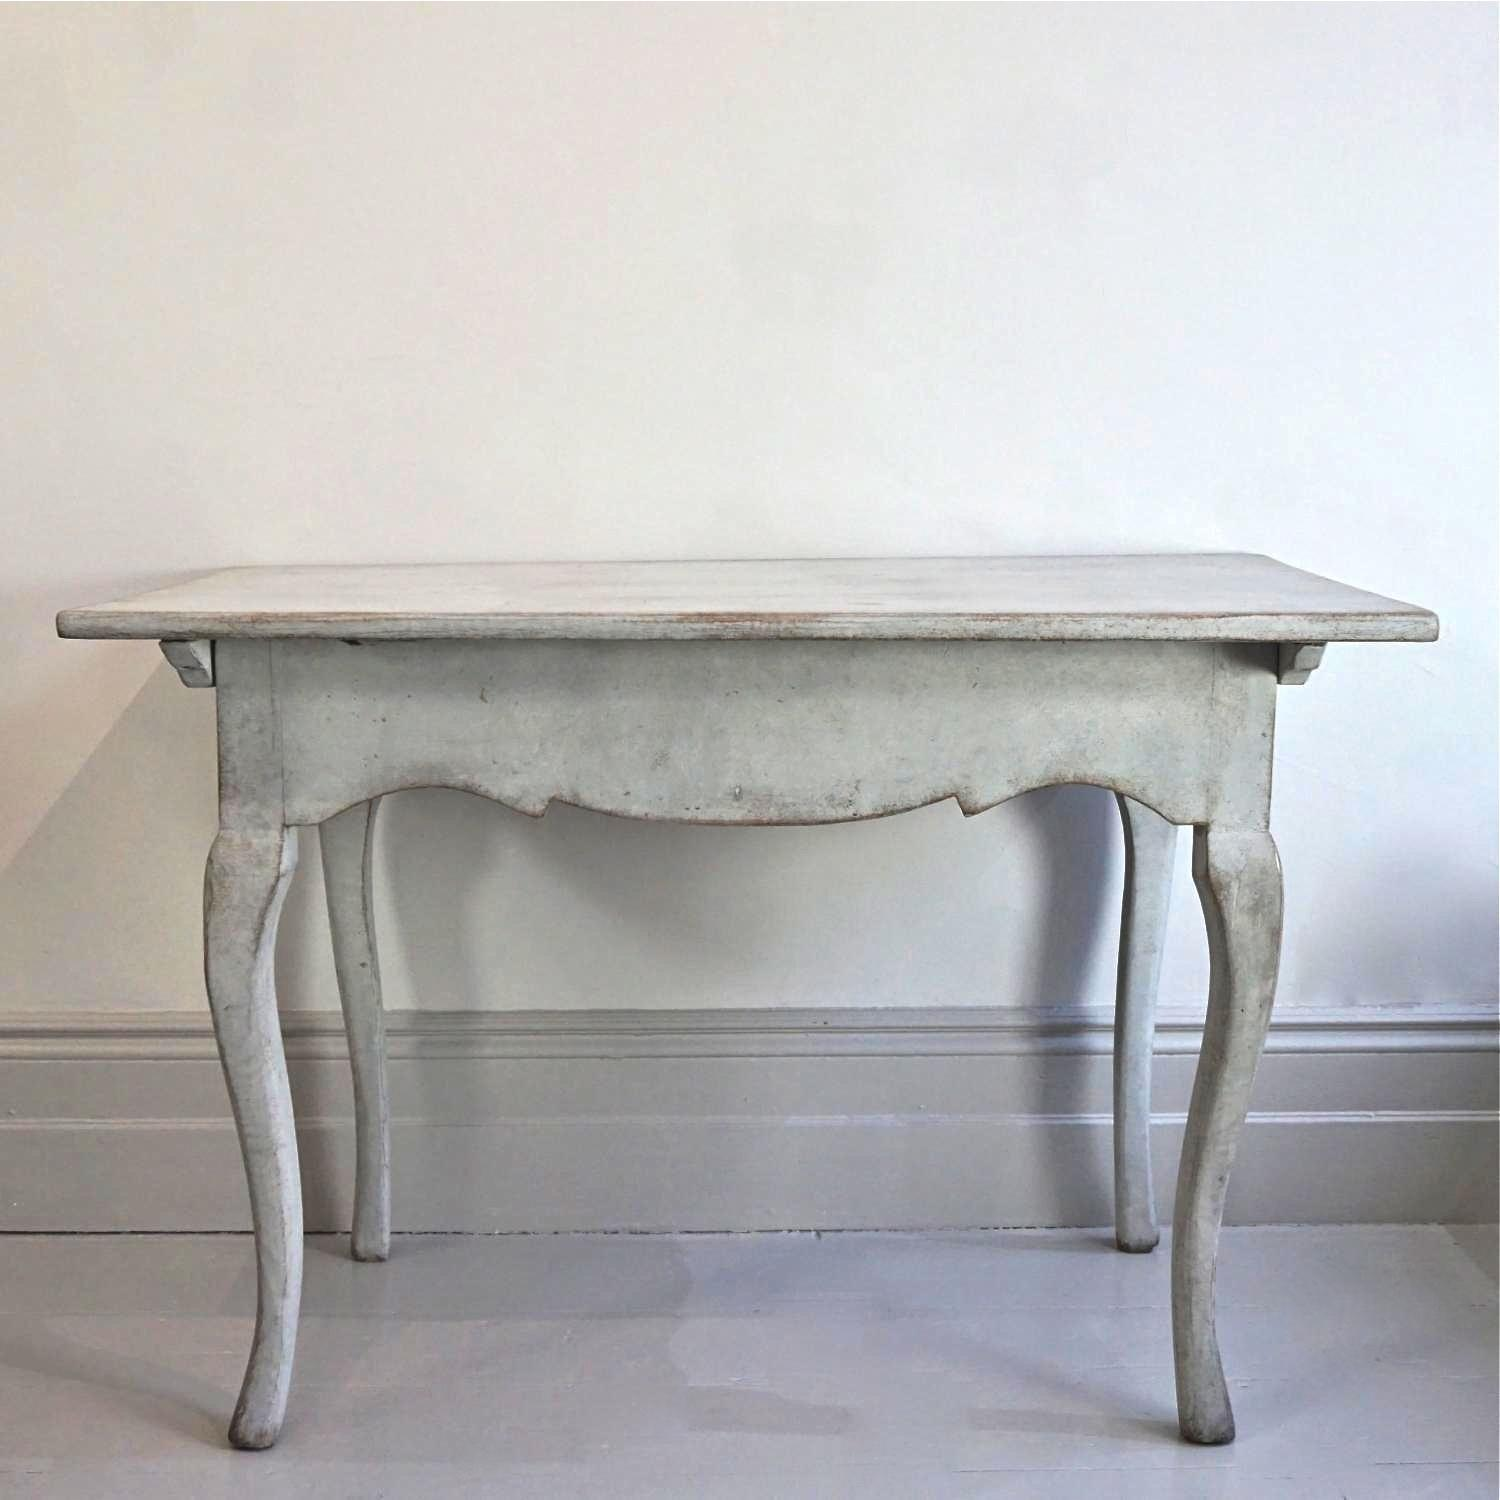 WONDERFUL 18TH CENTURY SWEDISH ROCOCO TABLE in FURNITURE